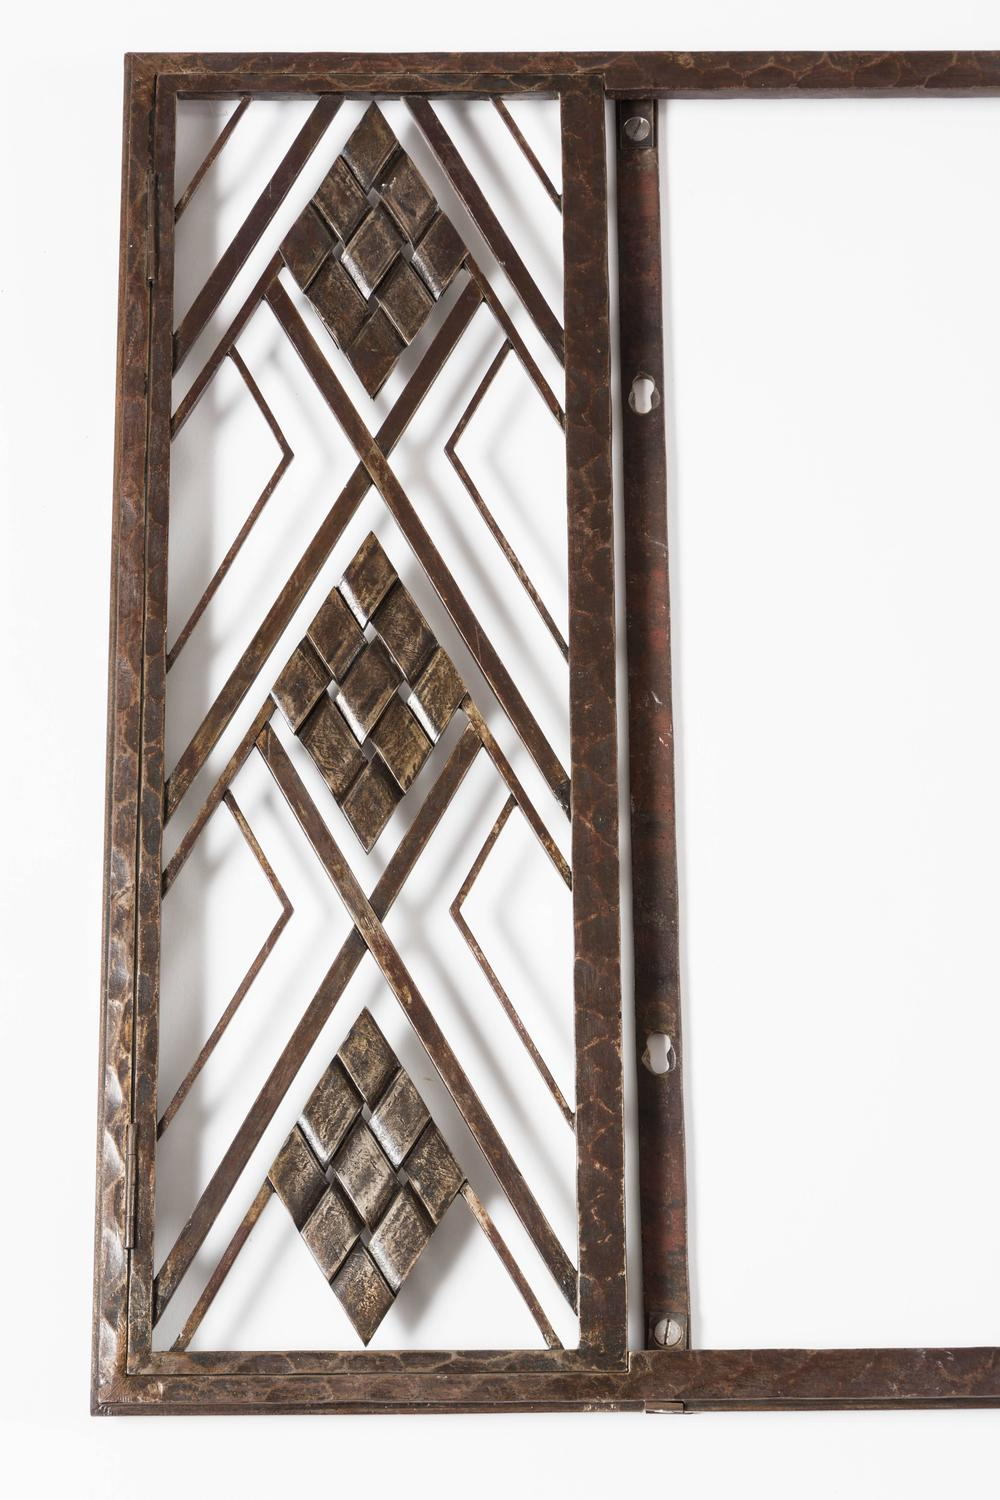 Welded art deco period mirror at 1stdibs for Art deco period